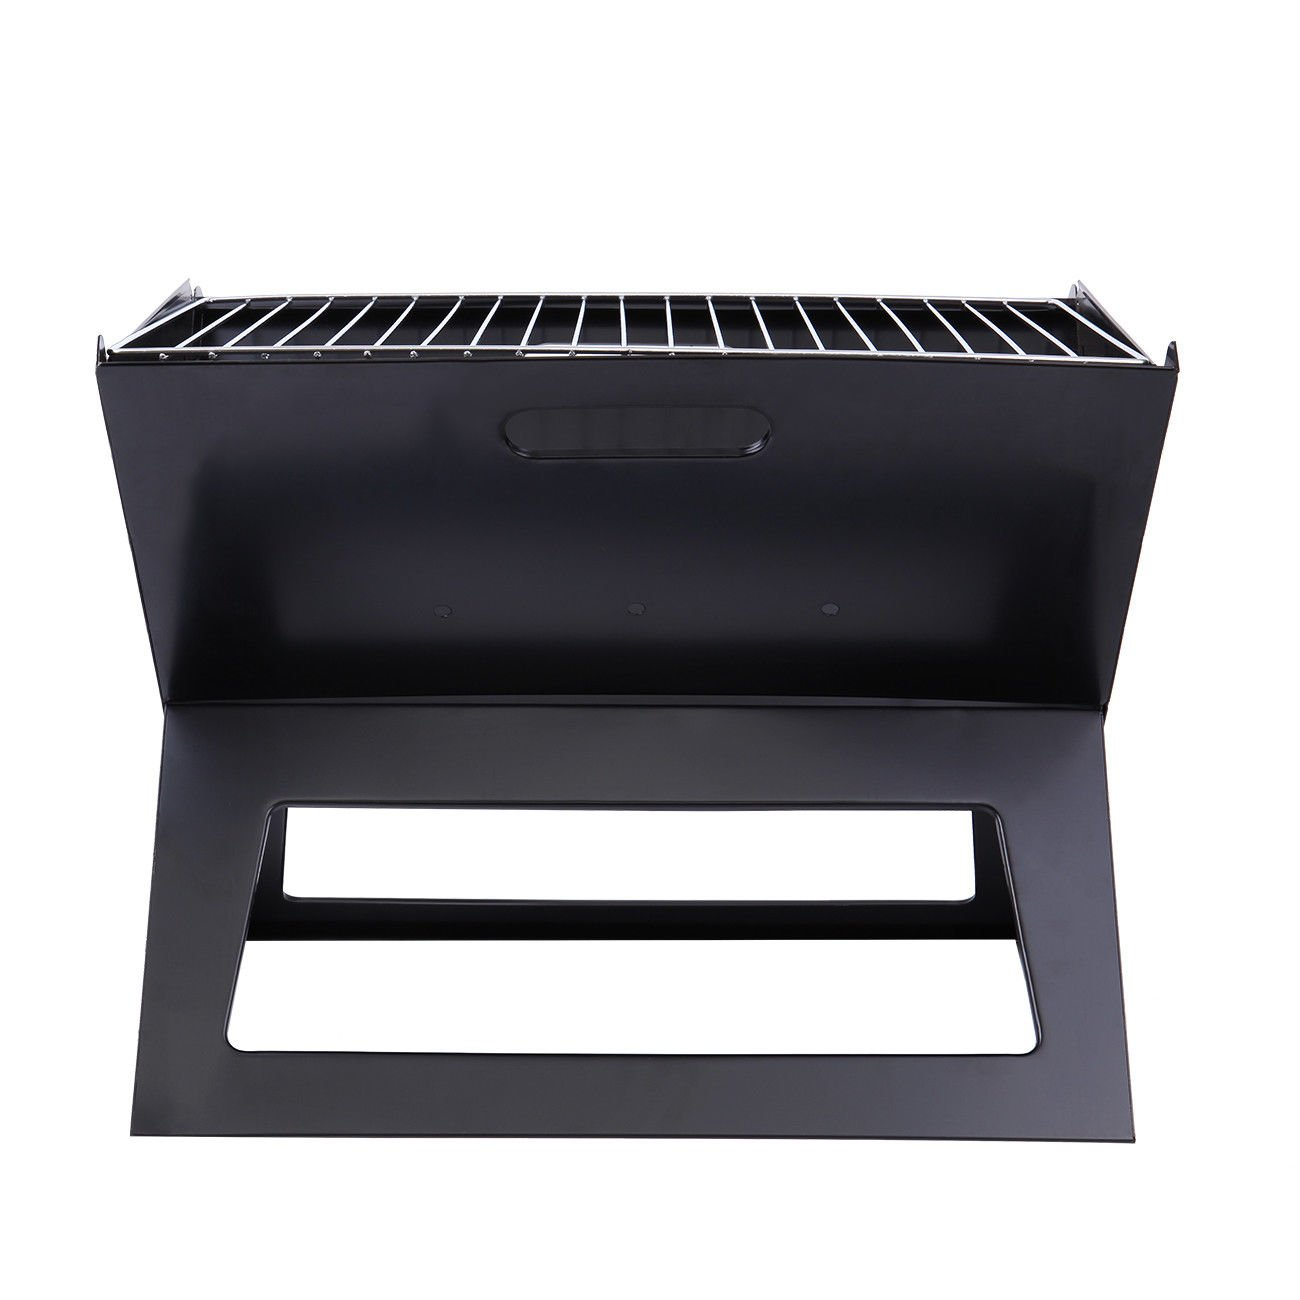 Maximumstore - Portable Barbecue BBQ Grill Compact Charcoal Bars Outdoor Camping